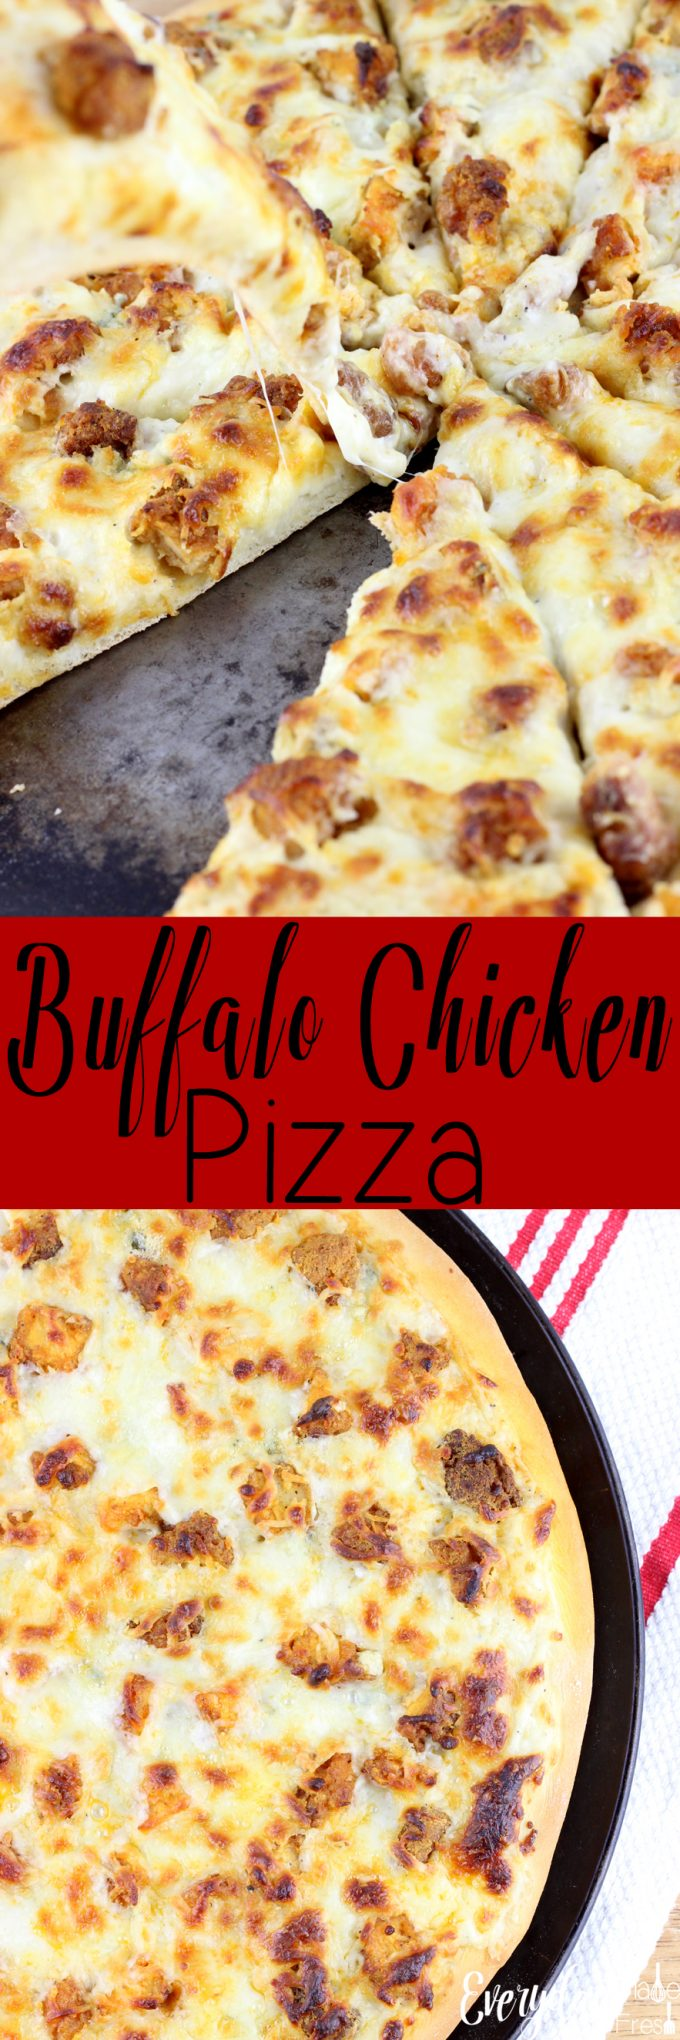 This Buffalo Chicken Pizza is simple and delicious! Enjoy one of your favorite pizzas at home, with this simple, no-rise crust.| EverydayMadeFresh.com